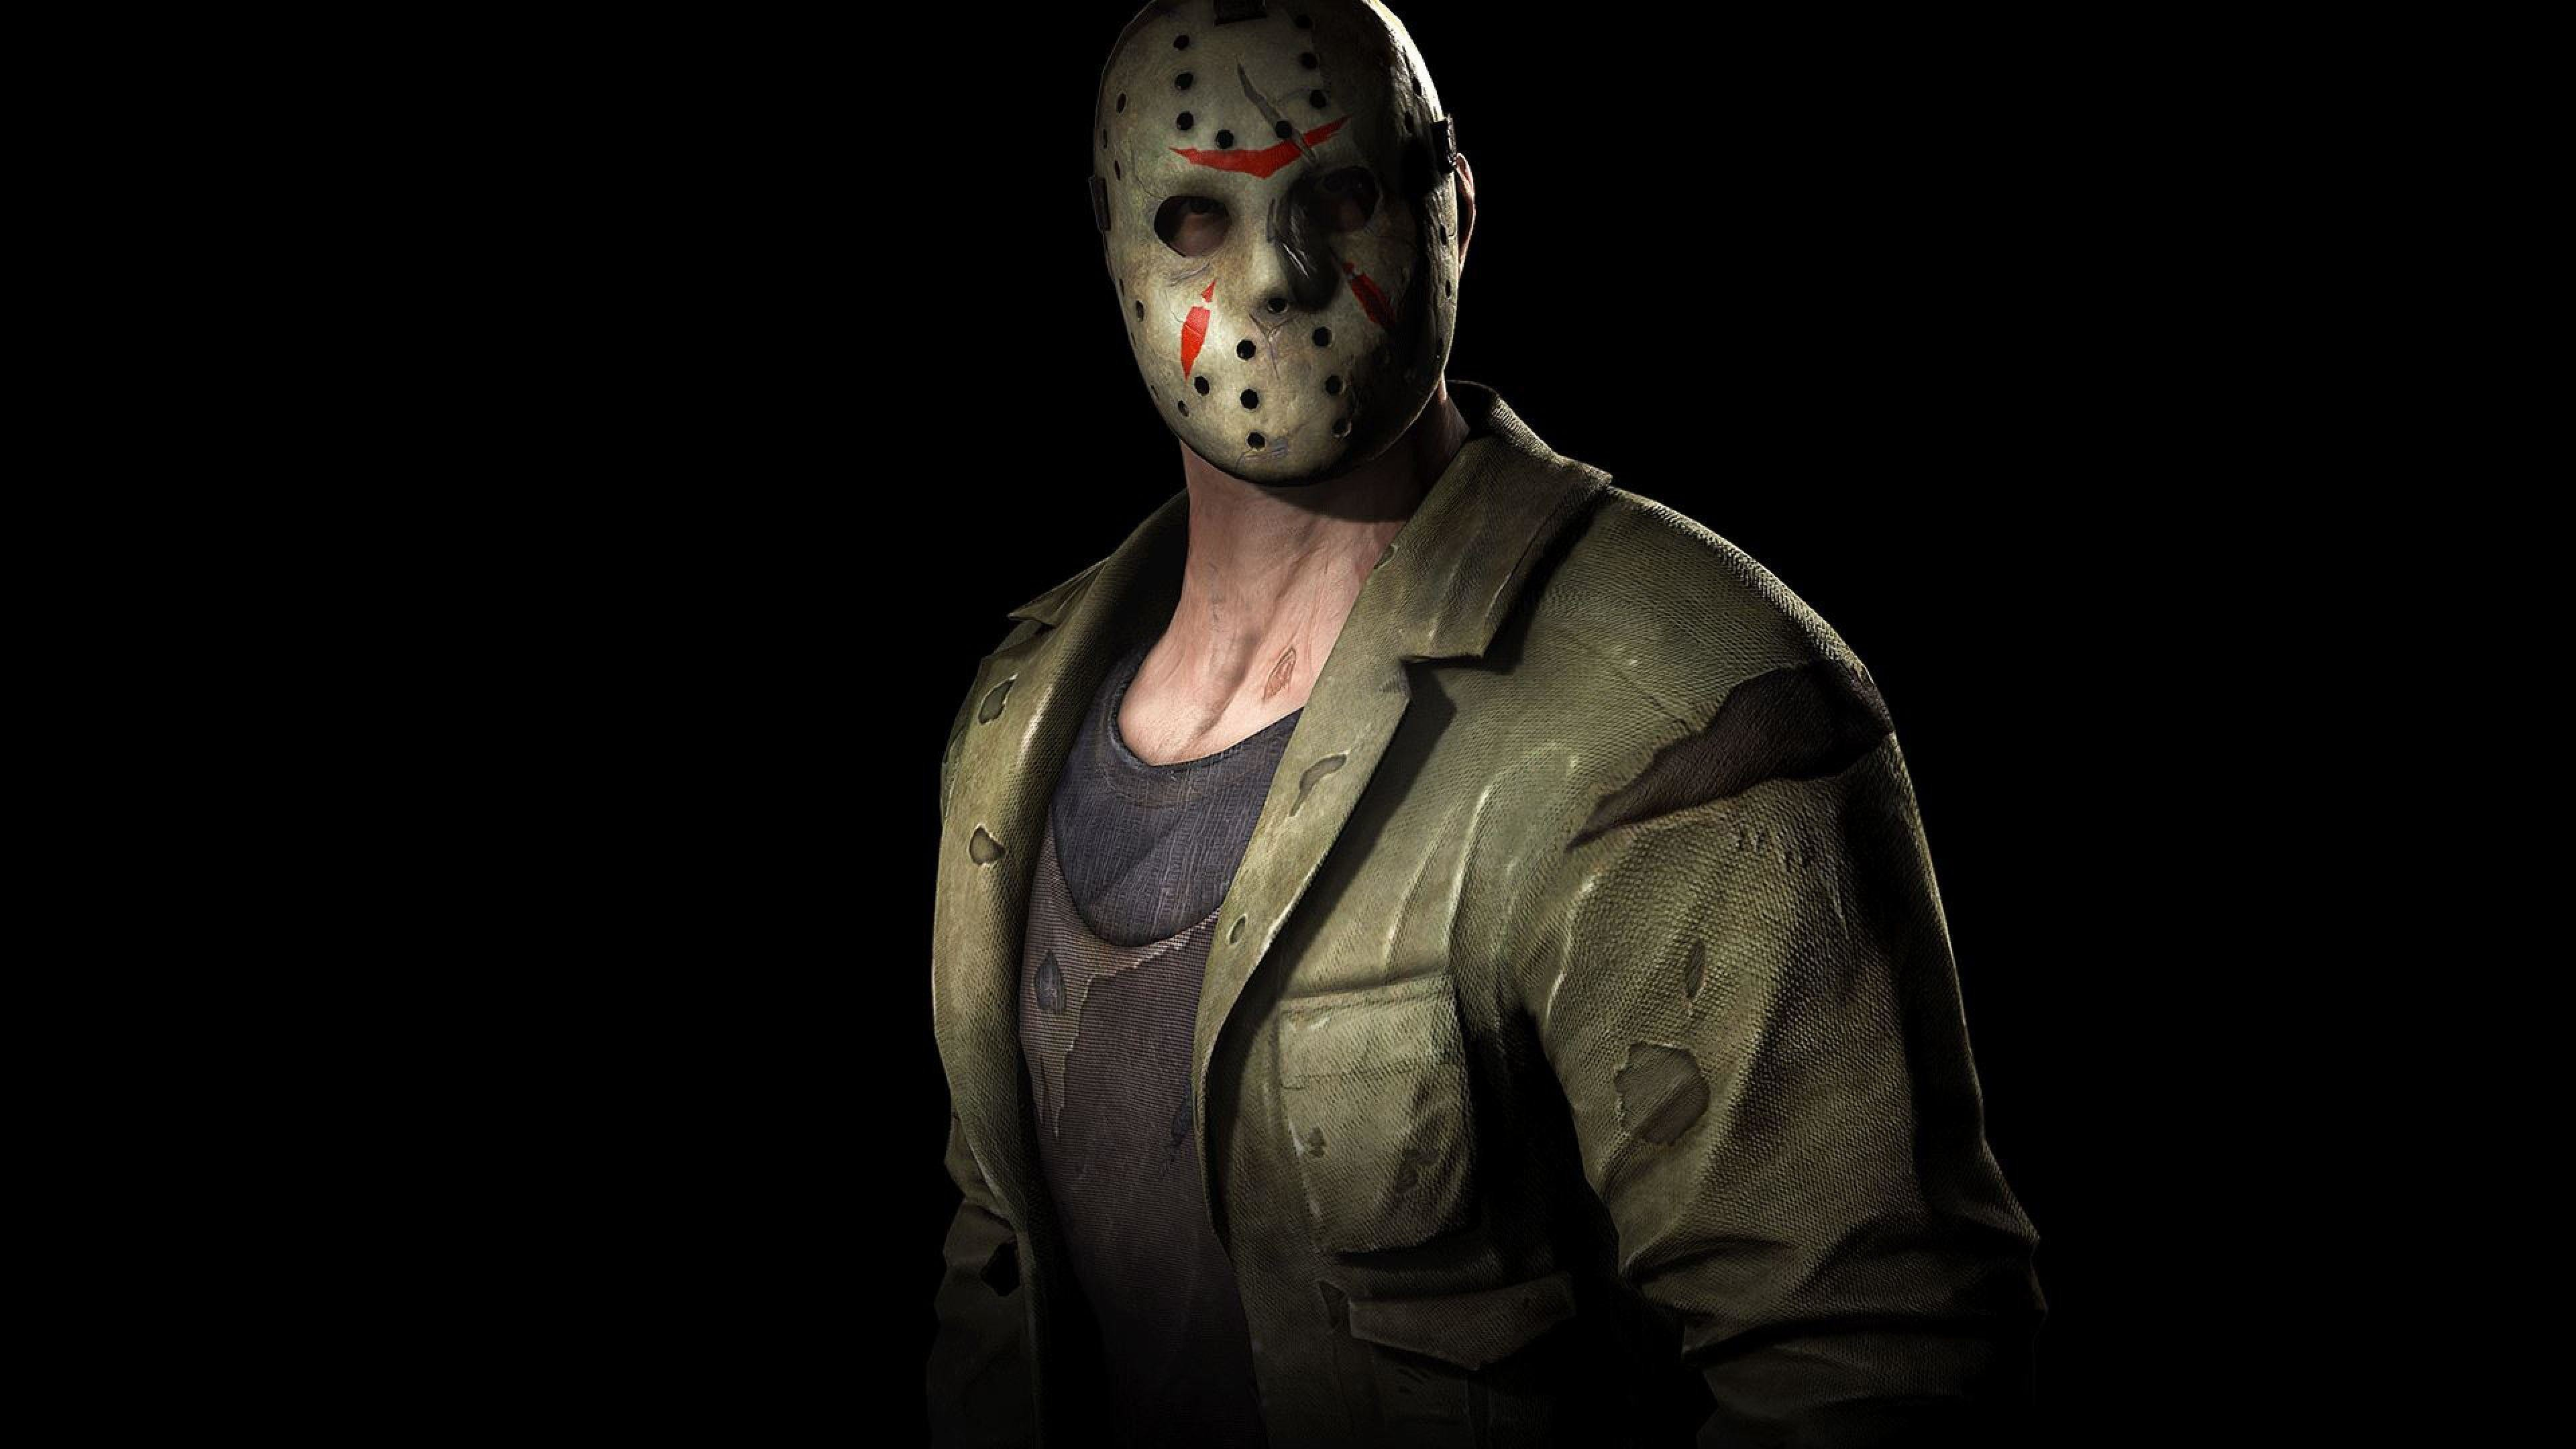 Res: 3840x2160, Download Wallpaper  Jason voorhees, Friday the 13th .